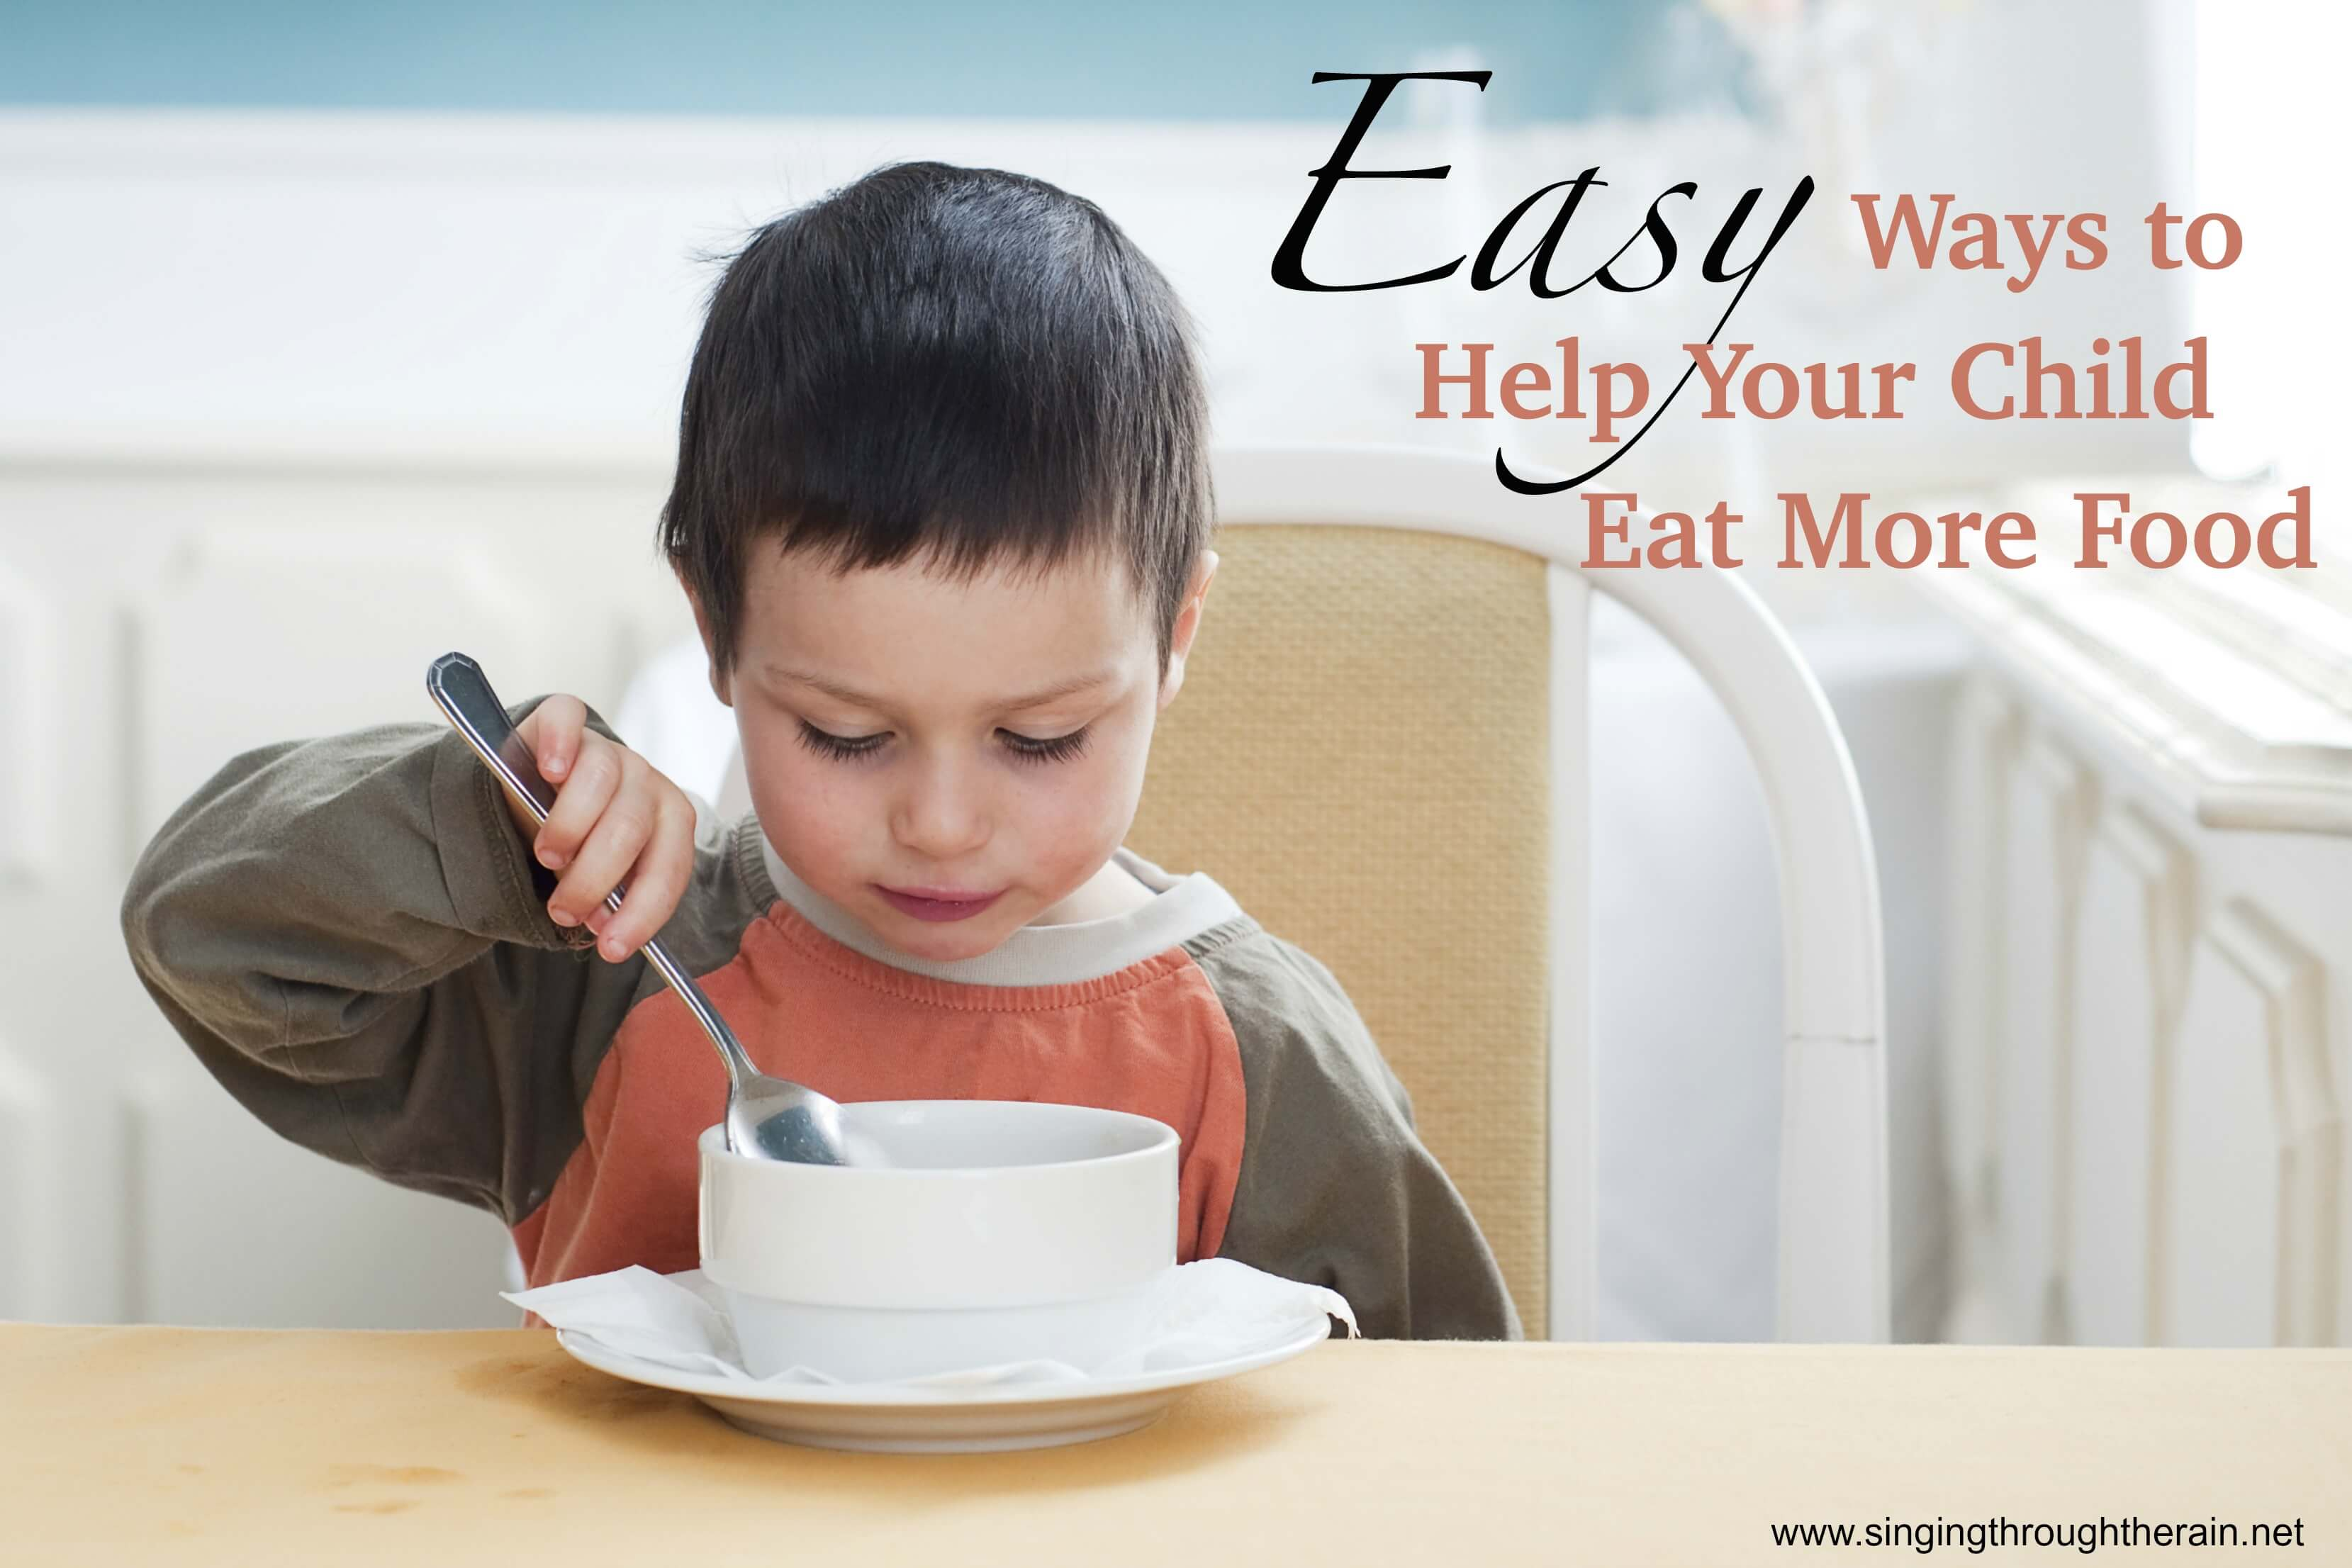 Easy Ways to Help Your Child Eat More Food